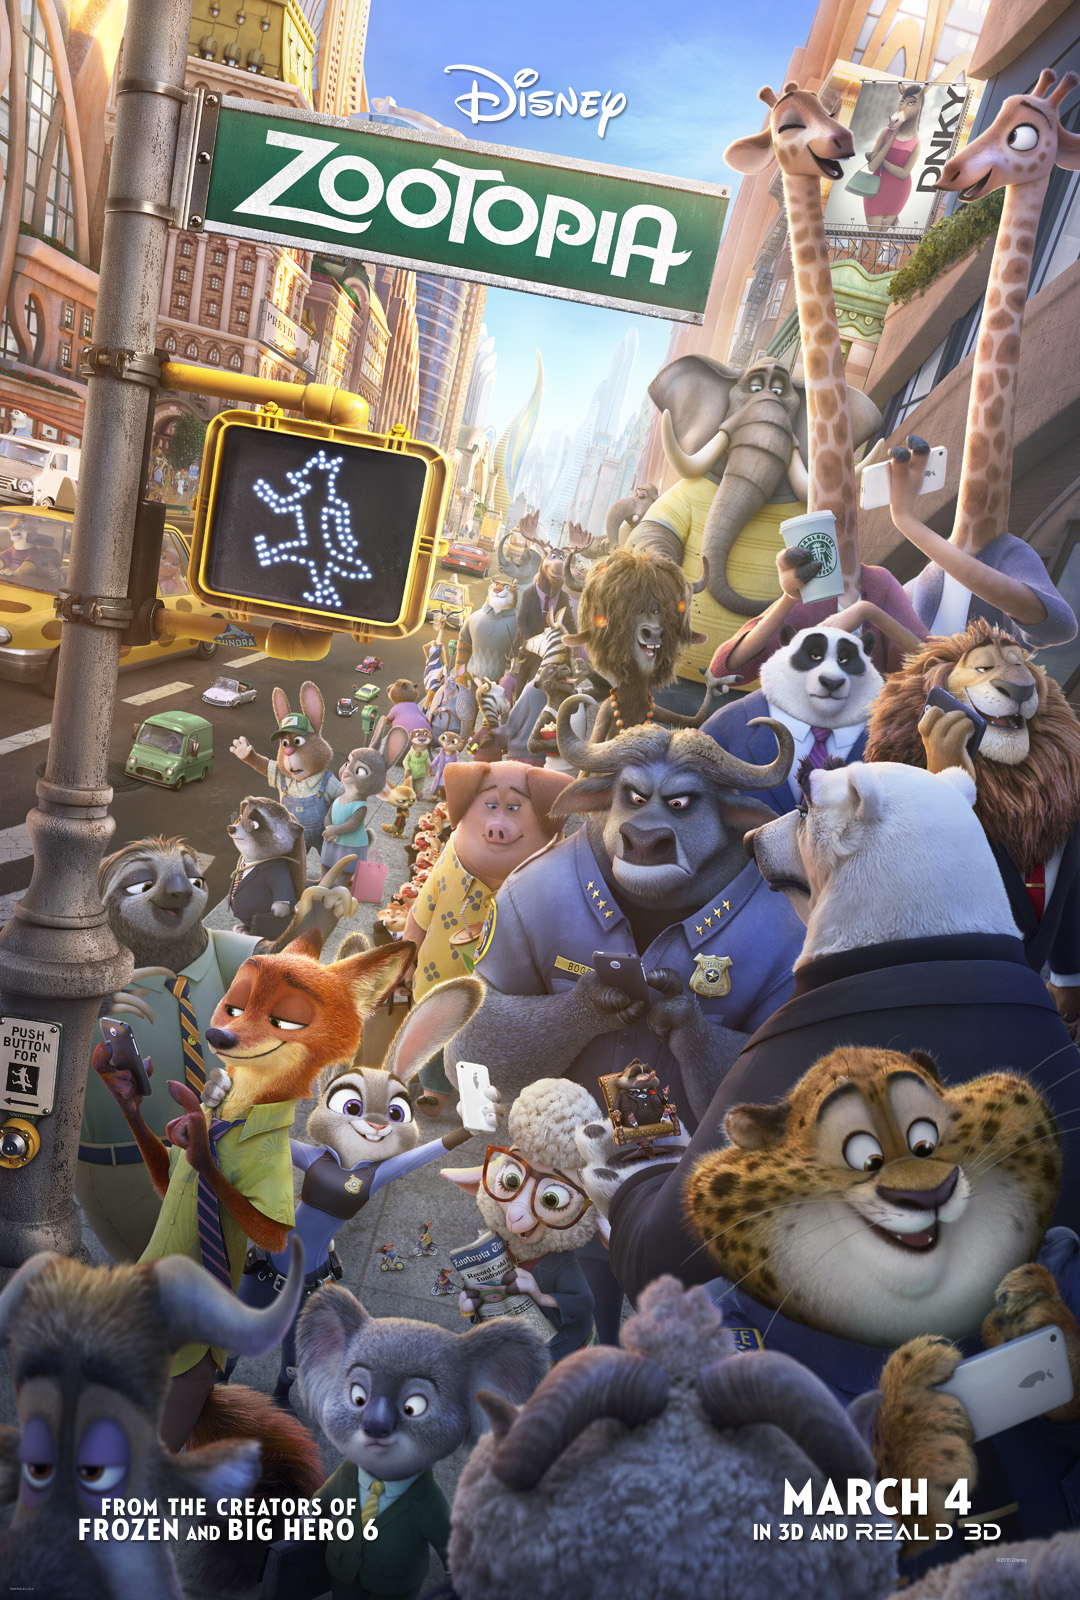 15 ways Disney Zootopia teaches you